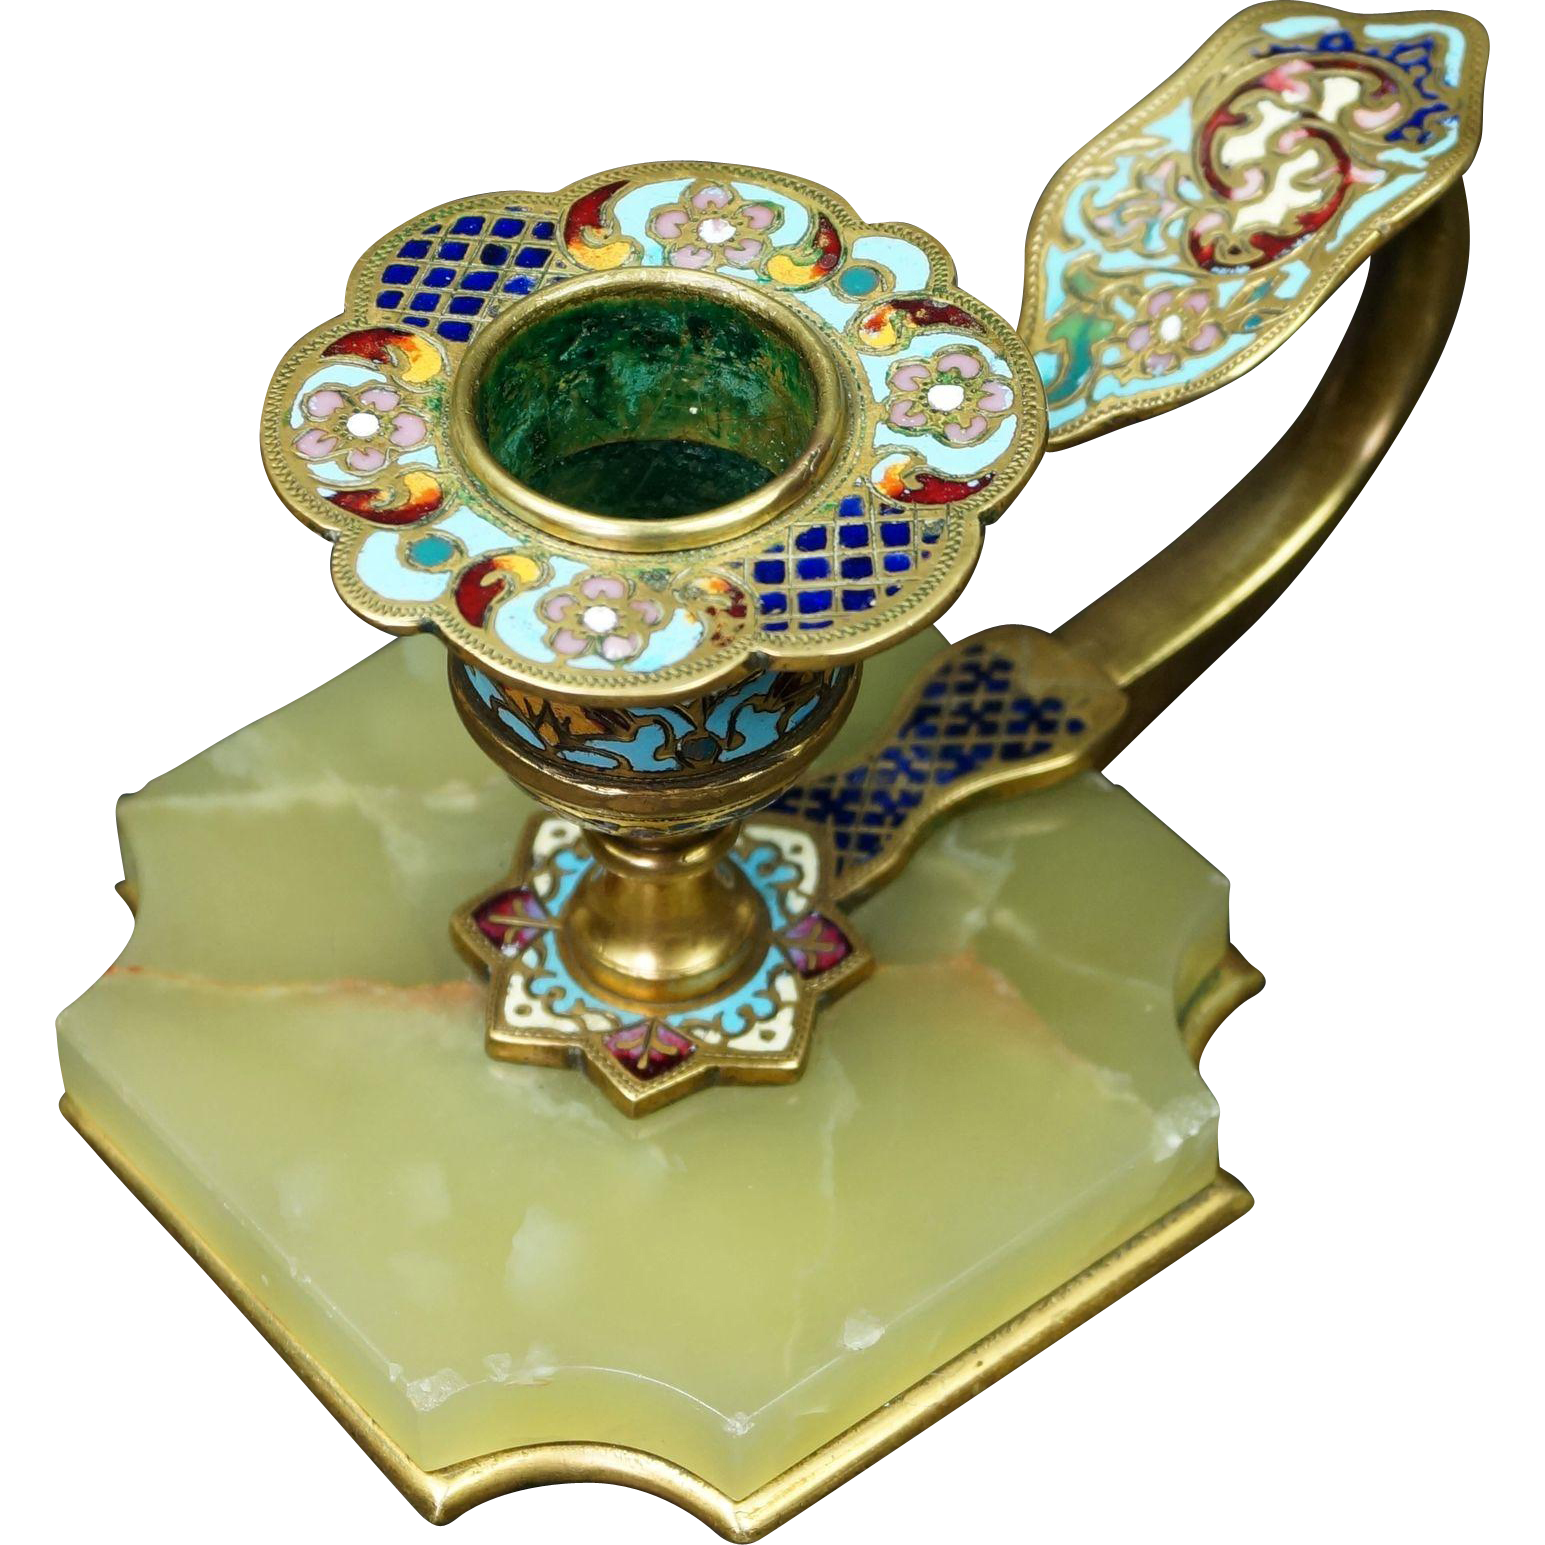 Antique 19th Century French Champleve Enamel Candlestick Circa 1890